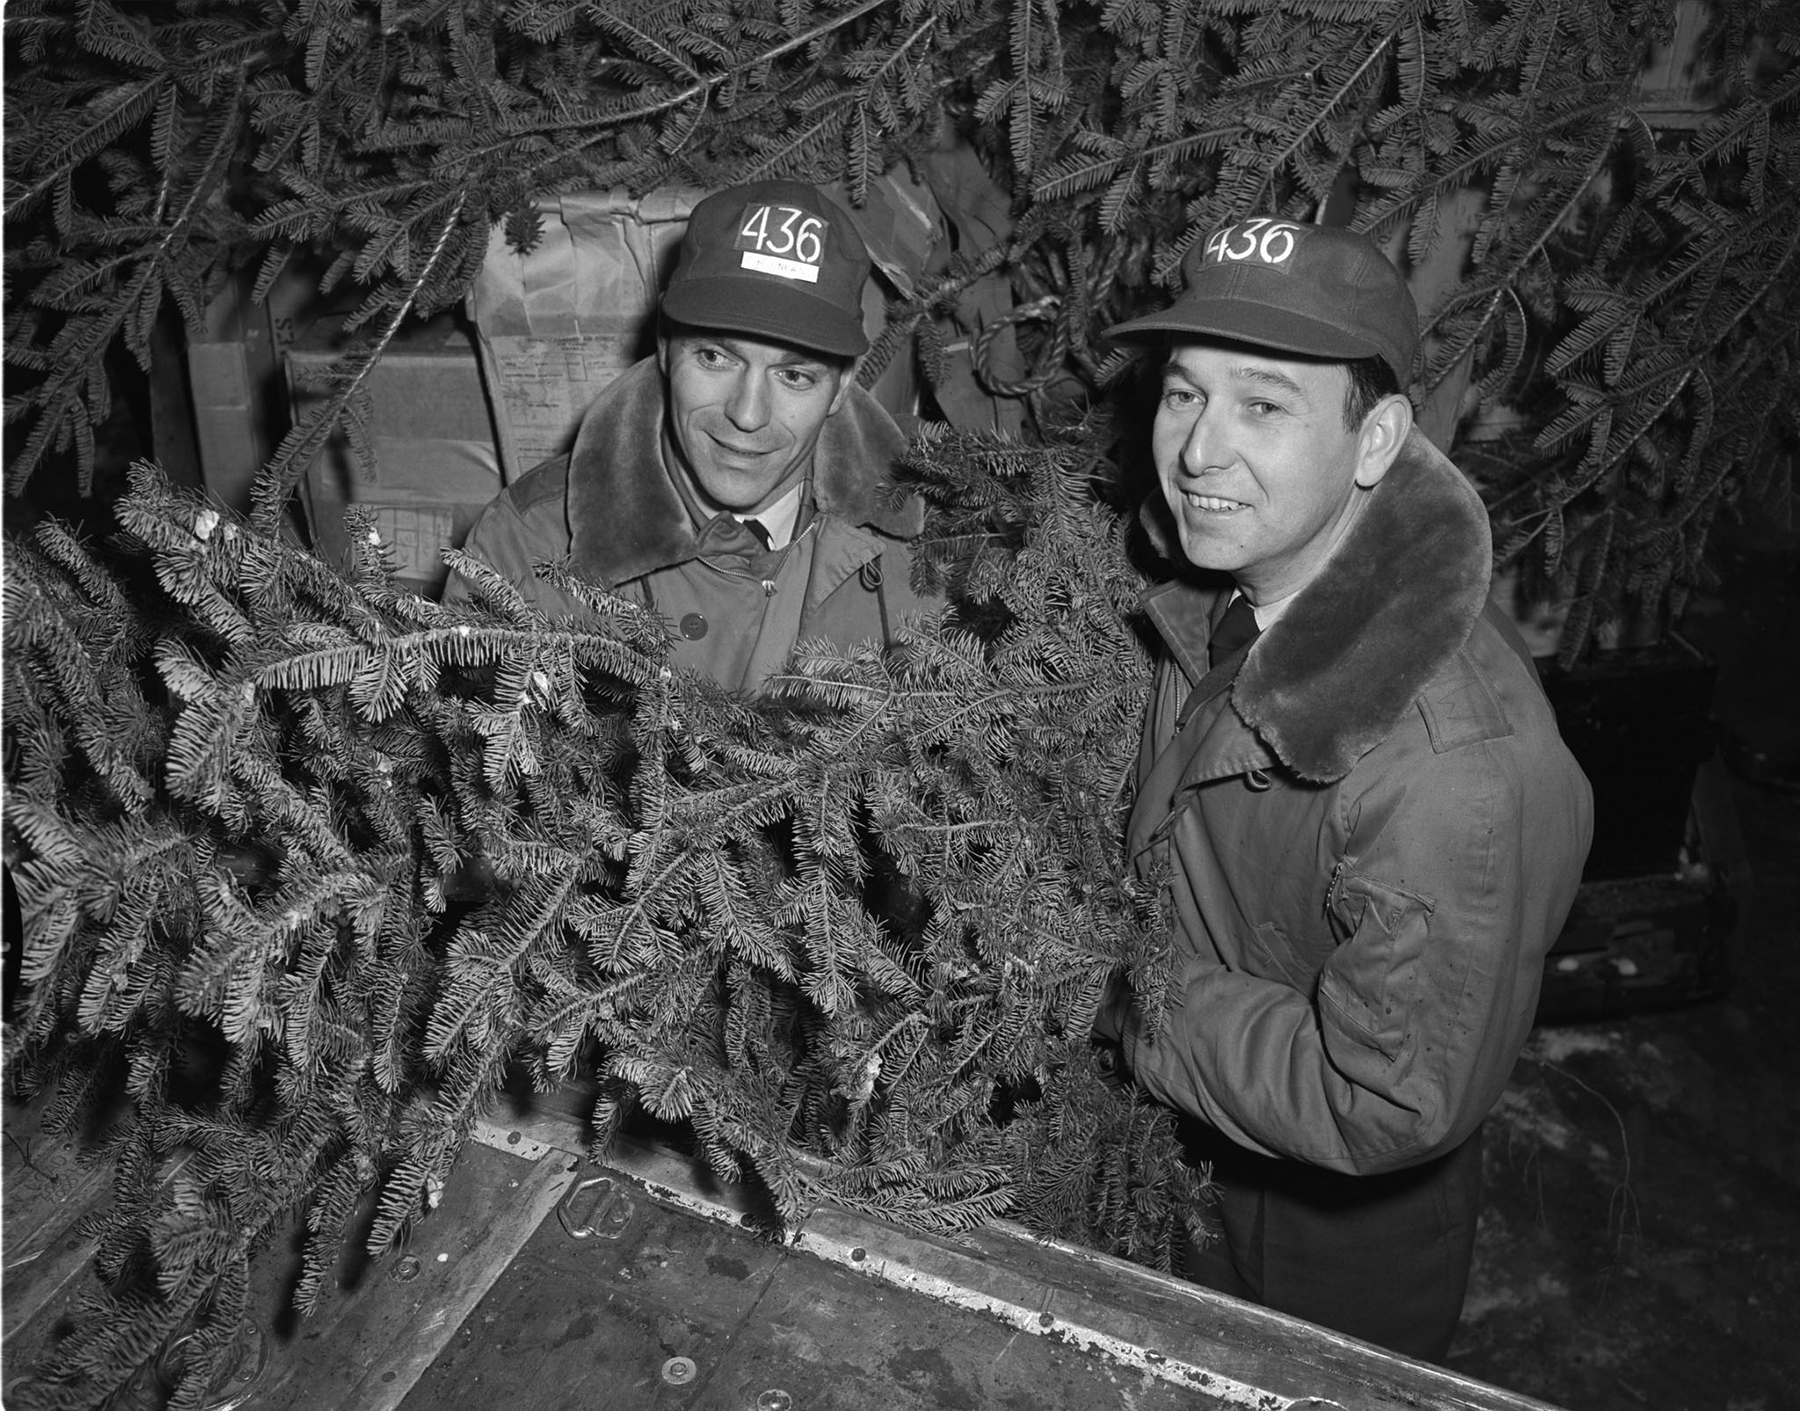 Flight Lieutenant H. Newin (left) and Flying Officer W. Empringham, deep in fir trees but not in a forest, are winging northward on board an RCAF CC-119 Flying Boxcar. The two members of Air Transport Command are engaged in Operation Santa Claus, dropping mail and Christmas trees to Canada's northern outposts. Because of the long Arctic nights, the bundles drift down by parachute under a bright moon, helping the people below to see the falling shapes. Flight Lieutenant Newin and Flying Officer Empringham are members of 436 Lachine Squadron, one of two Flying Boxcar squadrons participating in Operation Santa Claus. PHOTO: DND Archives, PL-86283